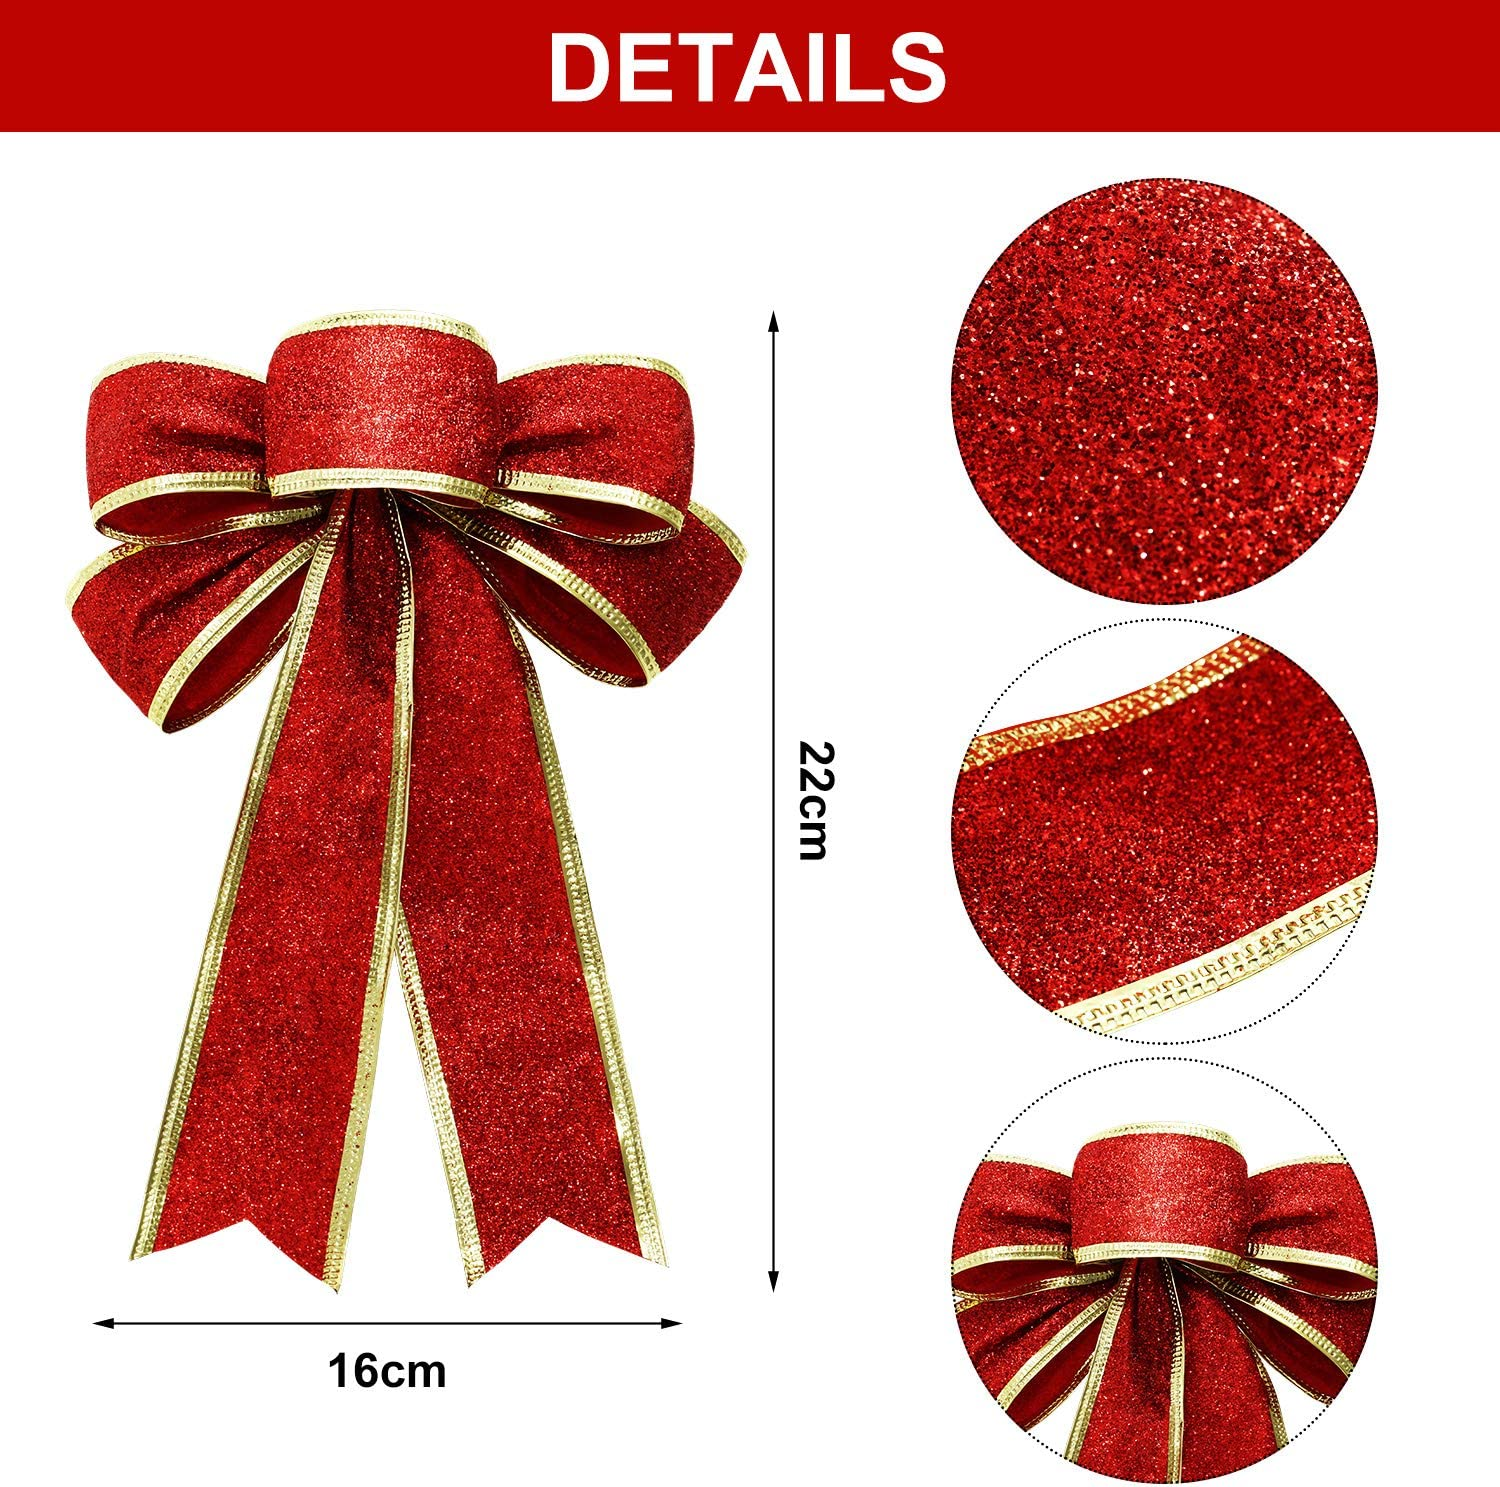 WILLBOND 12 Pieces Christmas Glitter Bows Large Christmas Tree Bows for Xmas Party Decoration 3 Colors